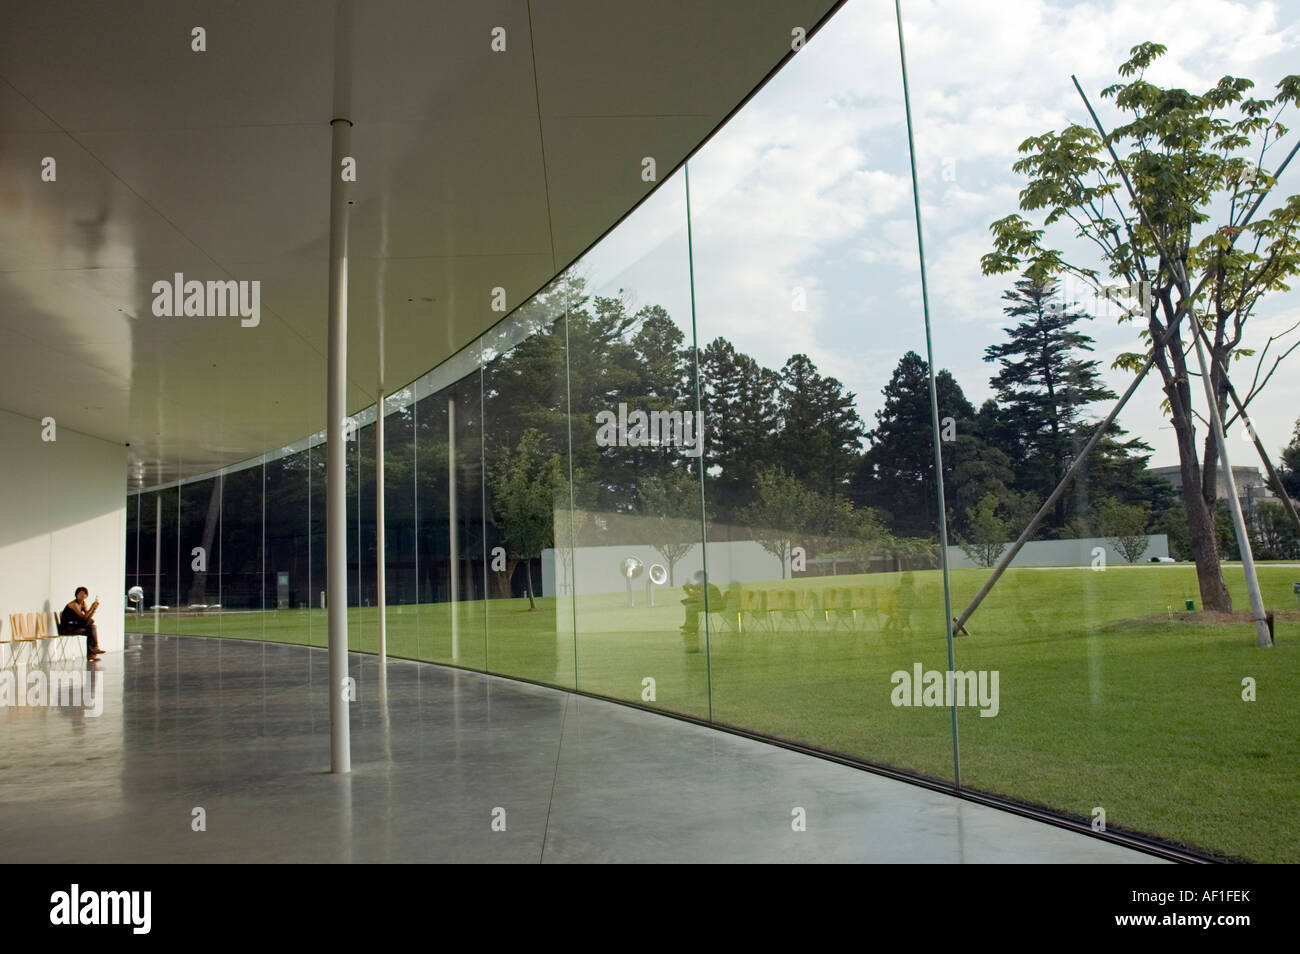 Woman waiting in the foyer of the 21st Century Museum of Contemporary Art, Kanazawa, Japan - Stock Image